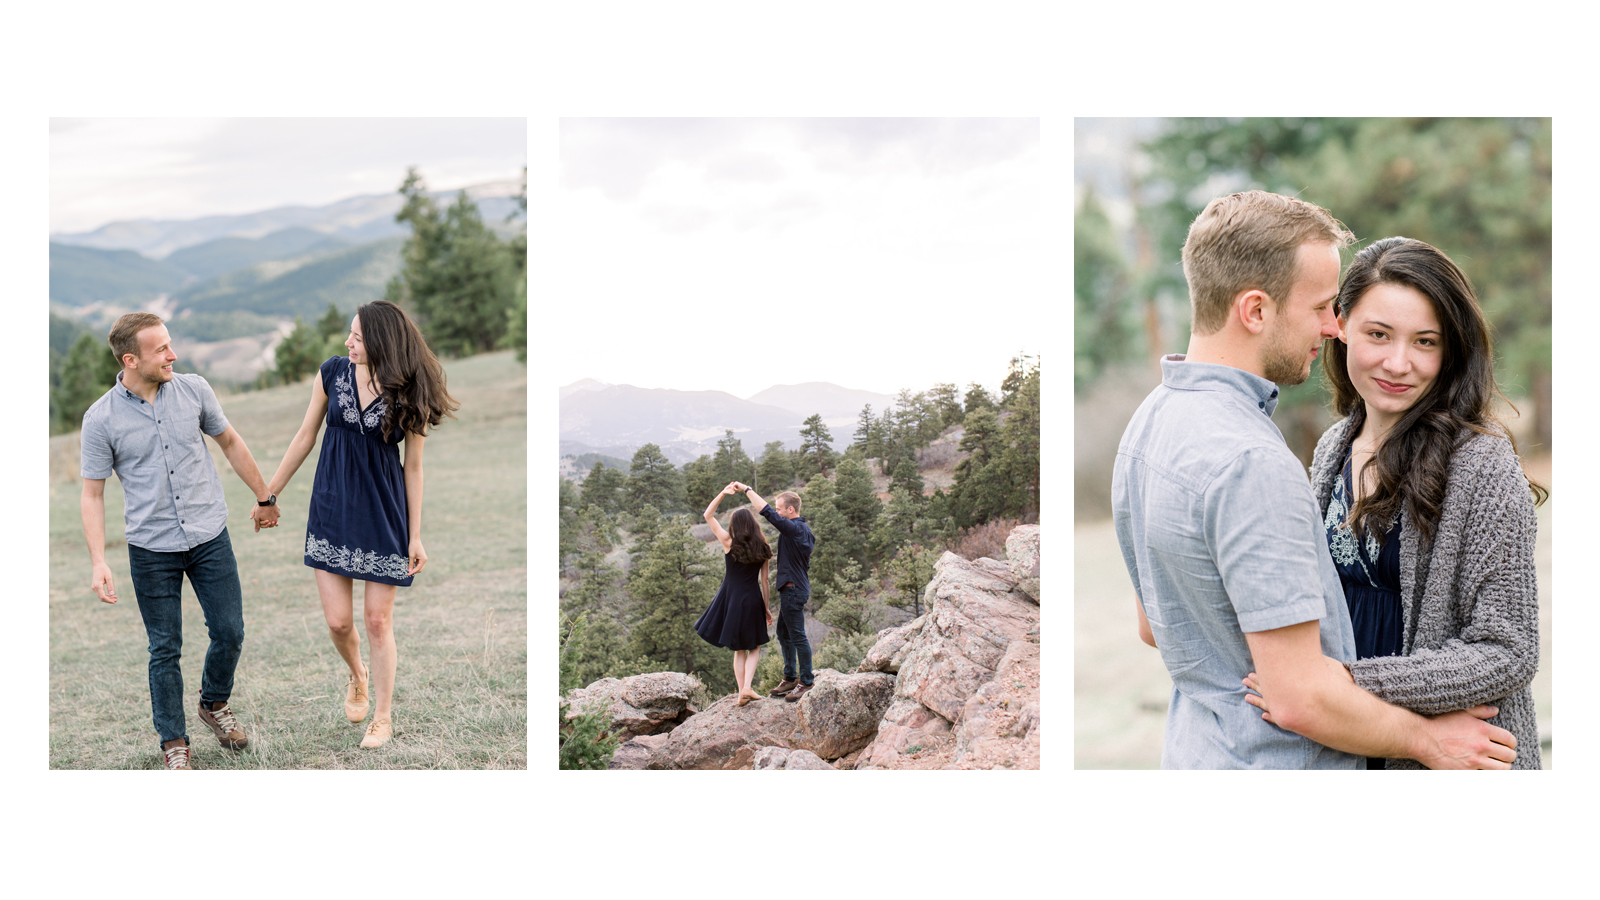 Michele with one L Colorado Mountain Engagement Photographer.jpg